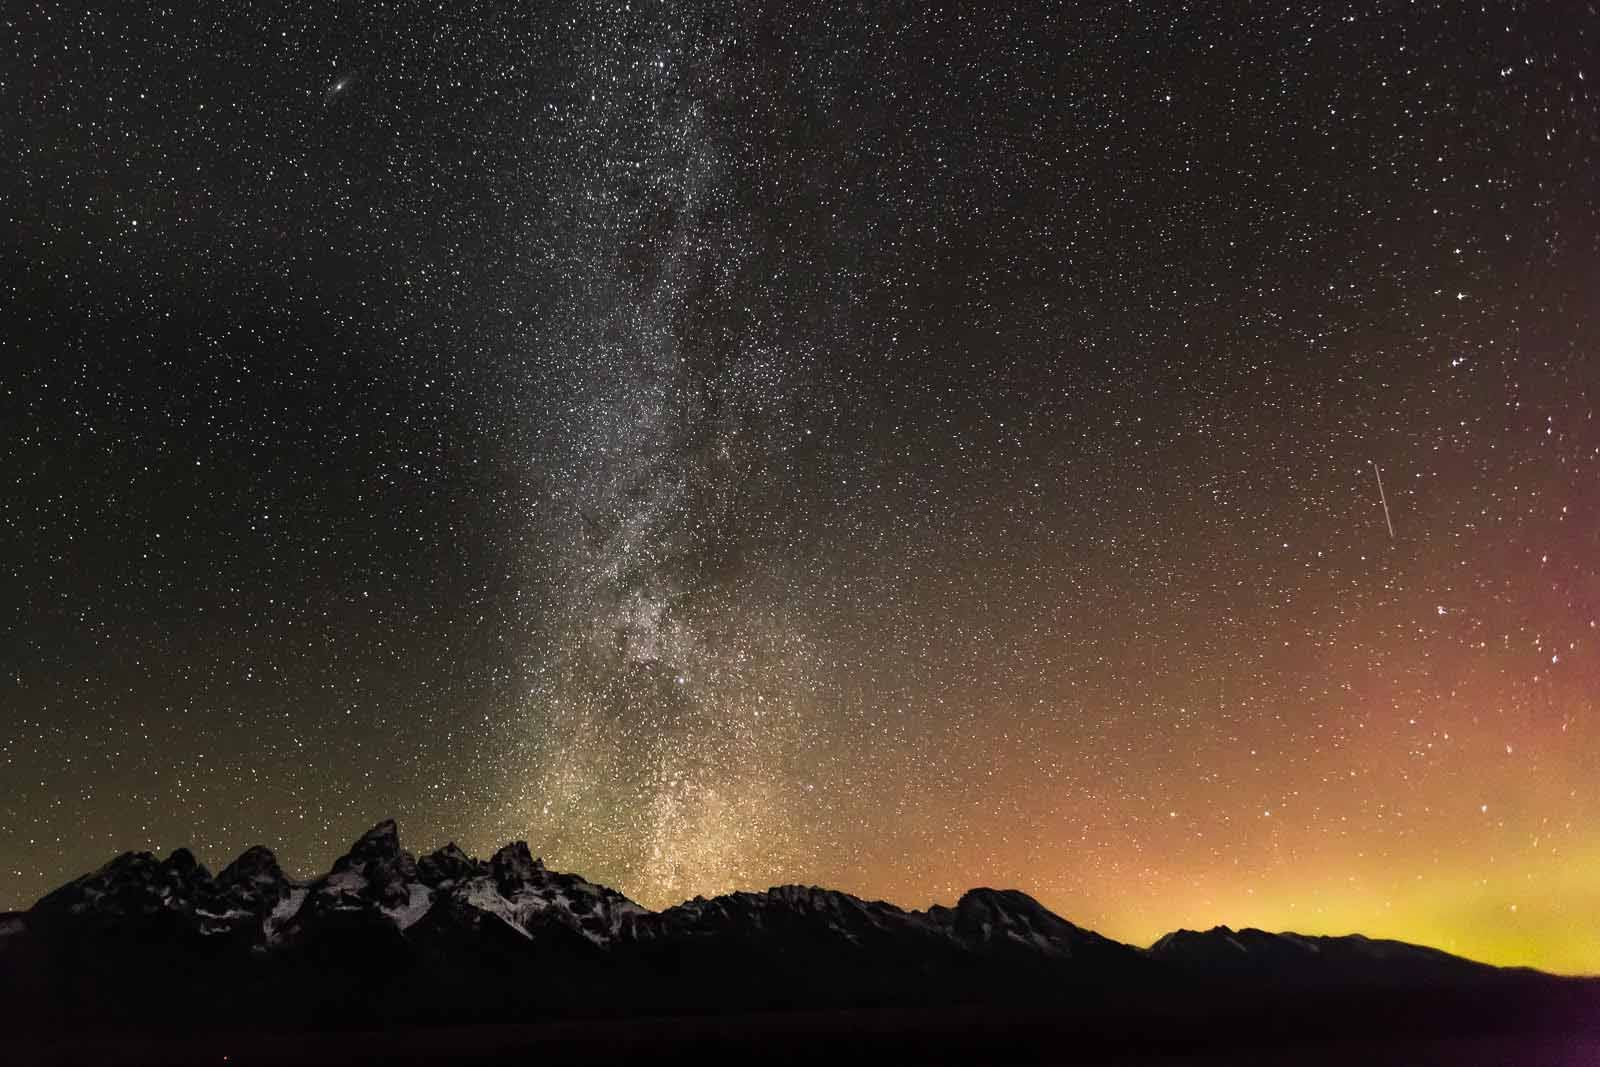 The Milky Way By Nadeen Flynn Night Time Is A Great Time For Landscape Photography With The Right Landscape Photography Nature Photography Night Photography